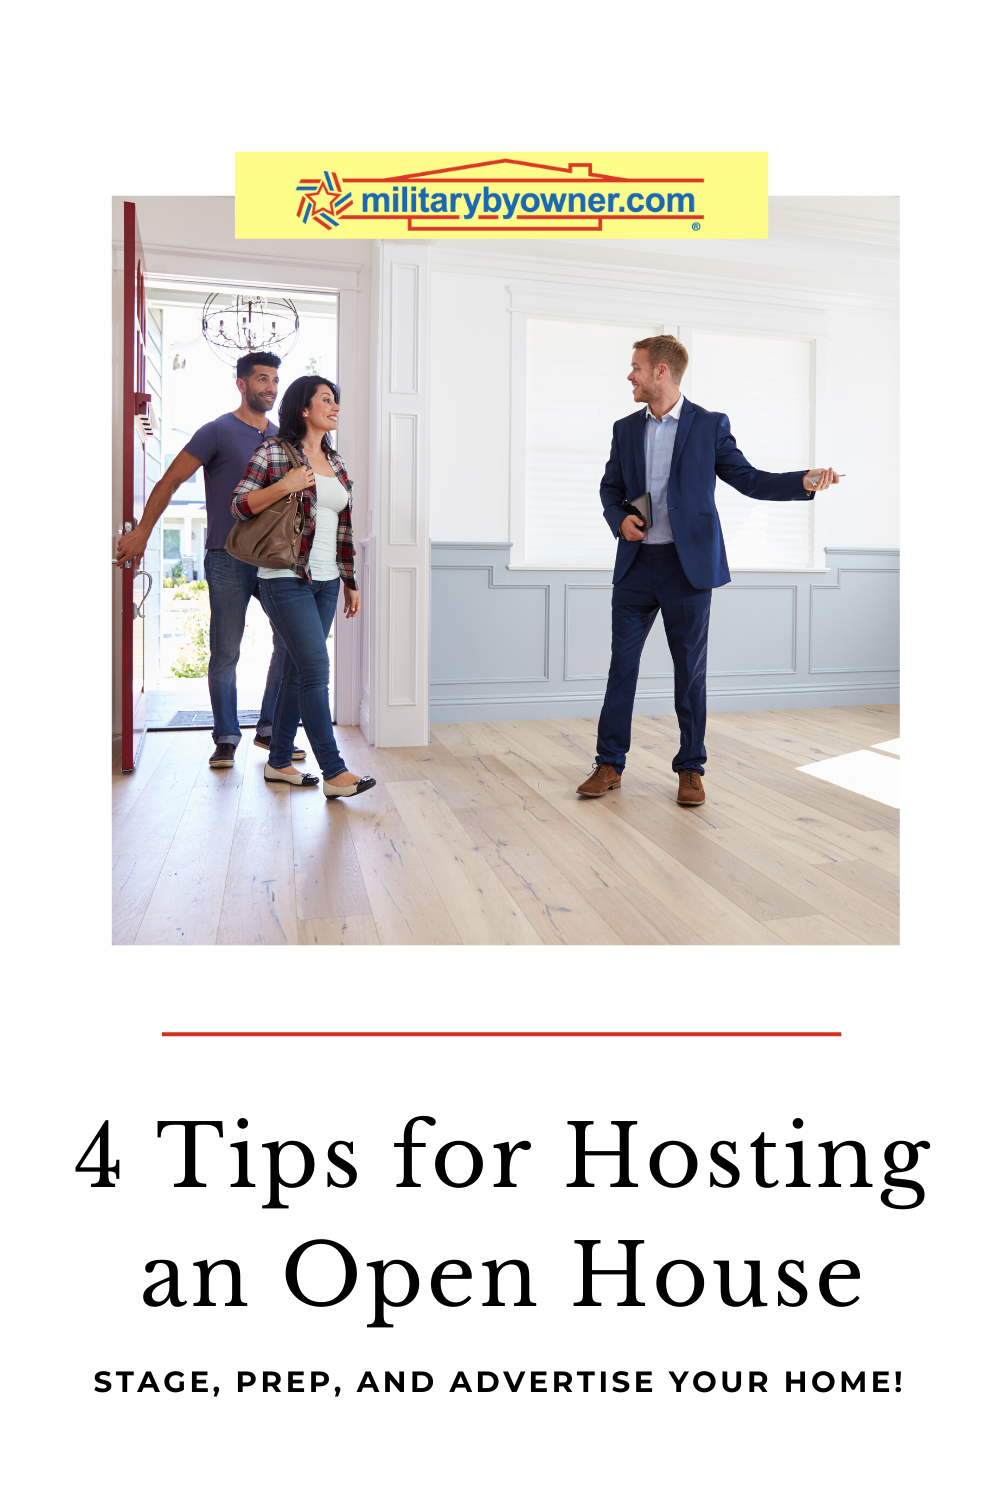 4 Tips for Hosting an Open House